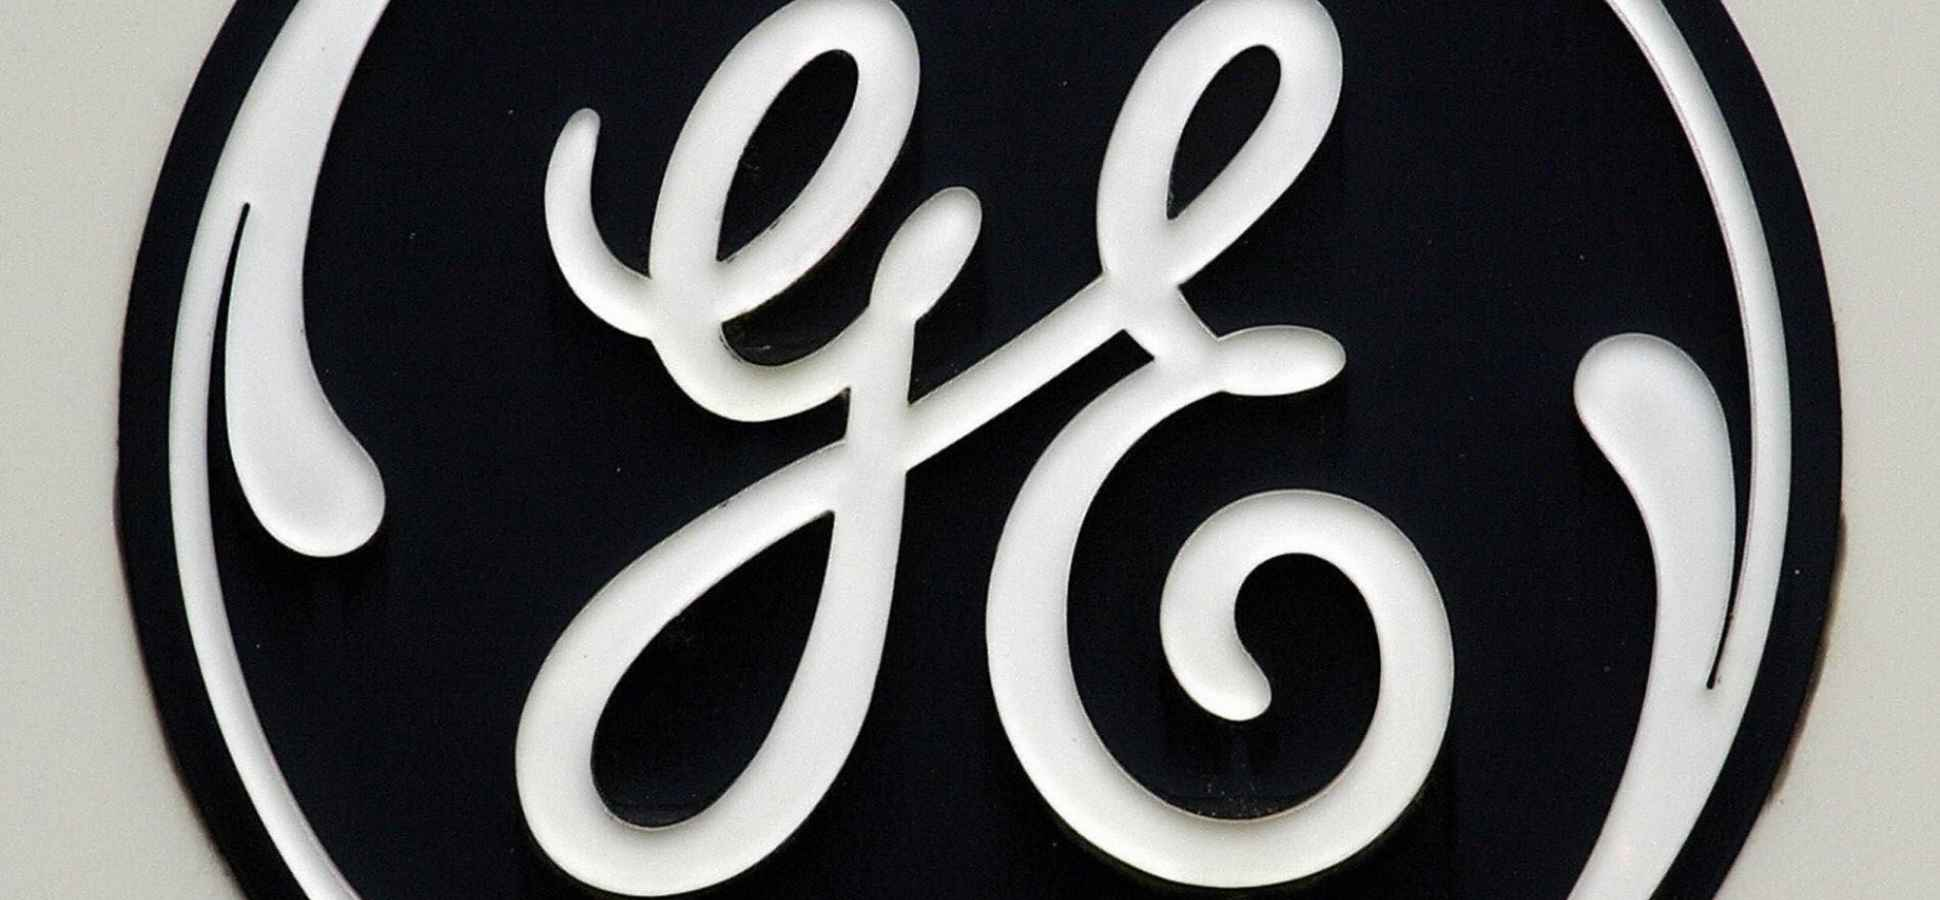 GE Is Learning About Leadership From Silicon Valley